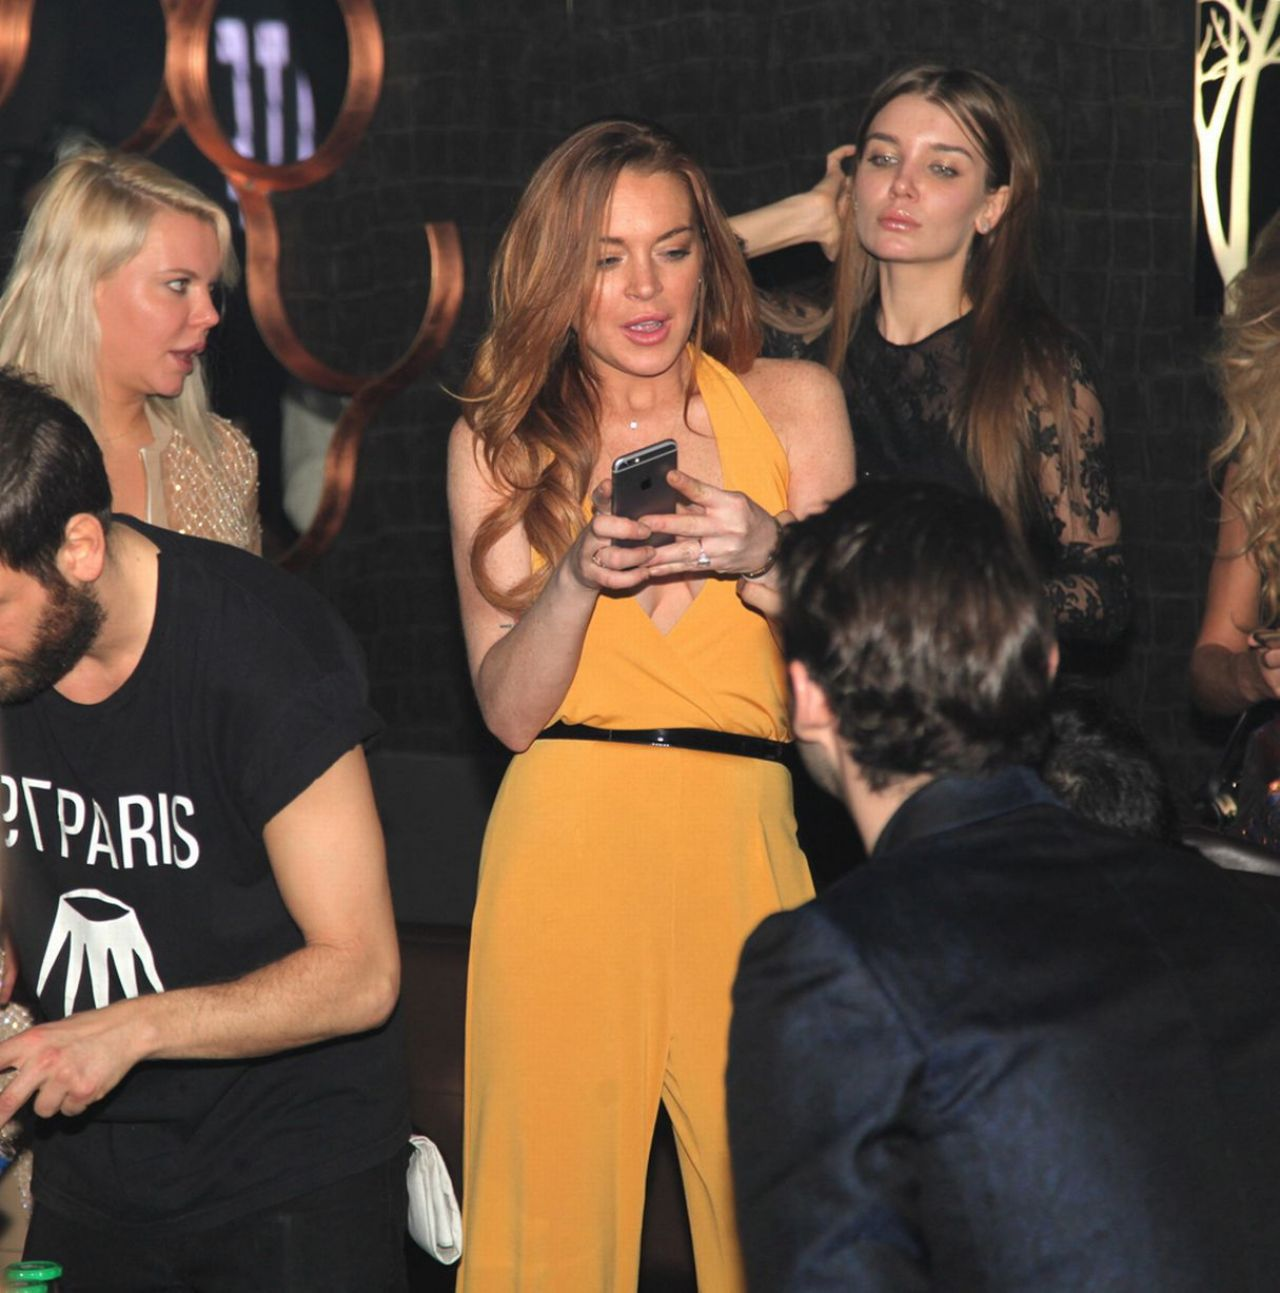 Lindsay Lohan Night Out Style - at Club 79 in Paris, March 2015